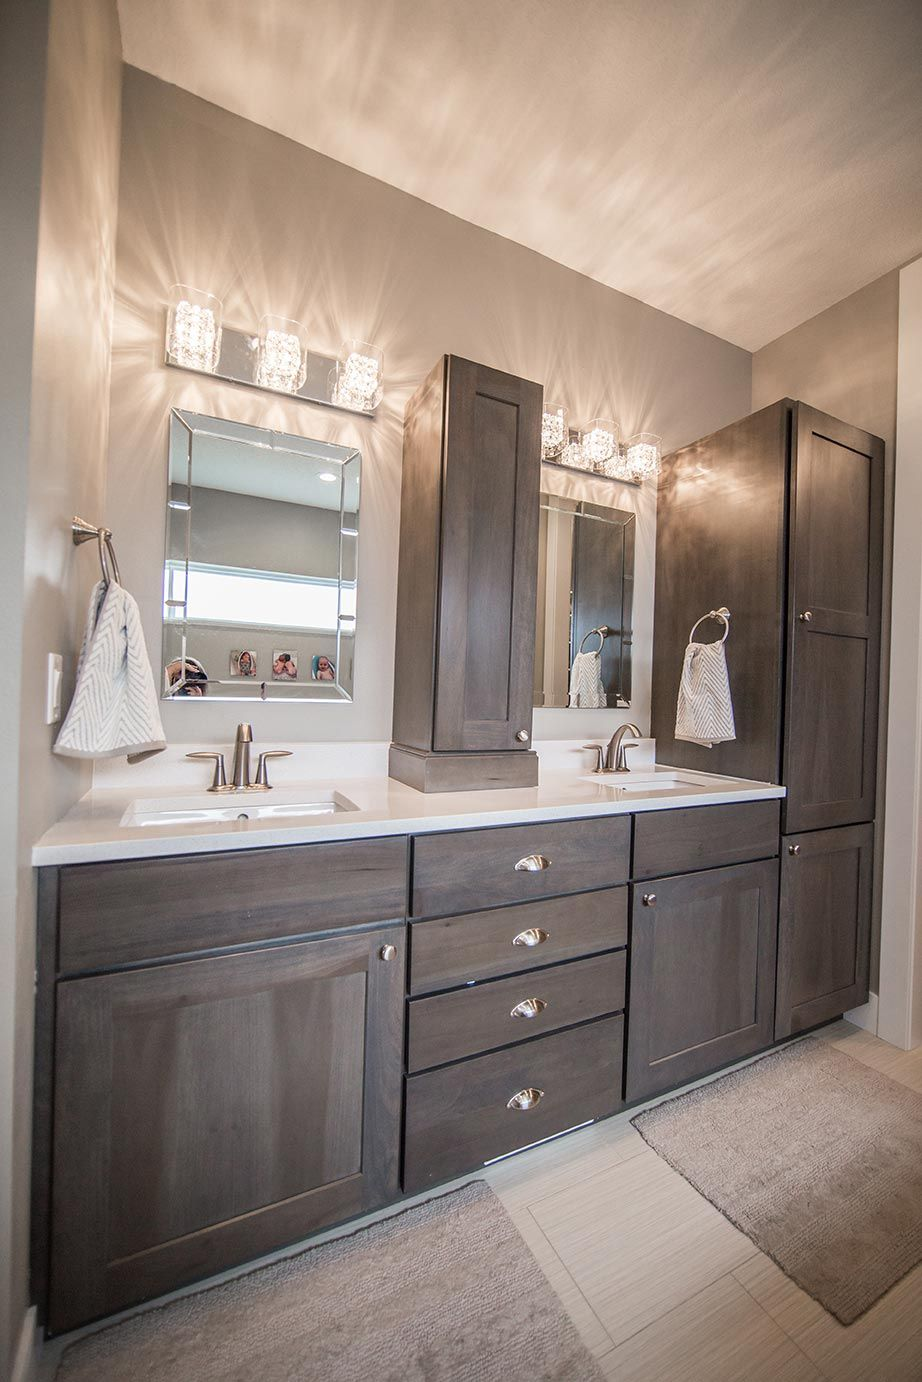 His and Hers Master Bathroom Sink and Vanity Bathrooms